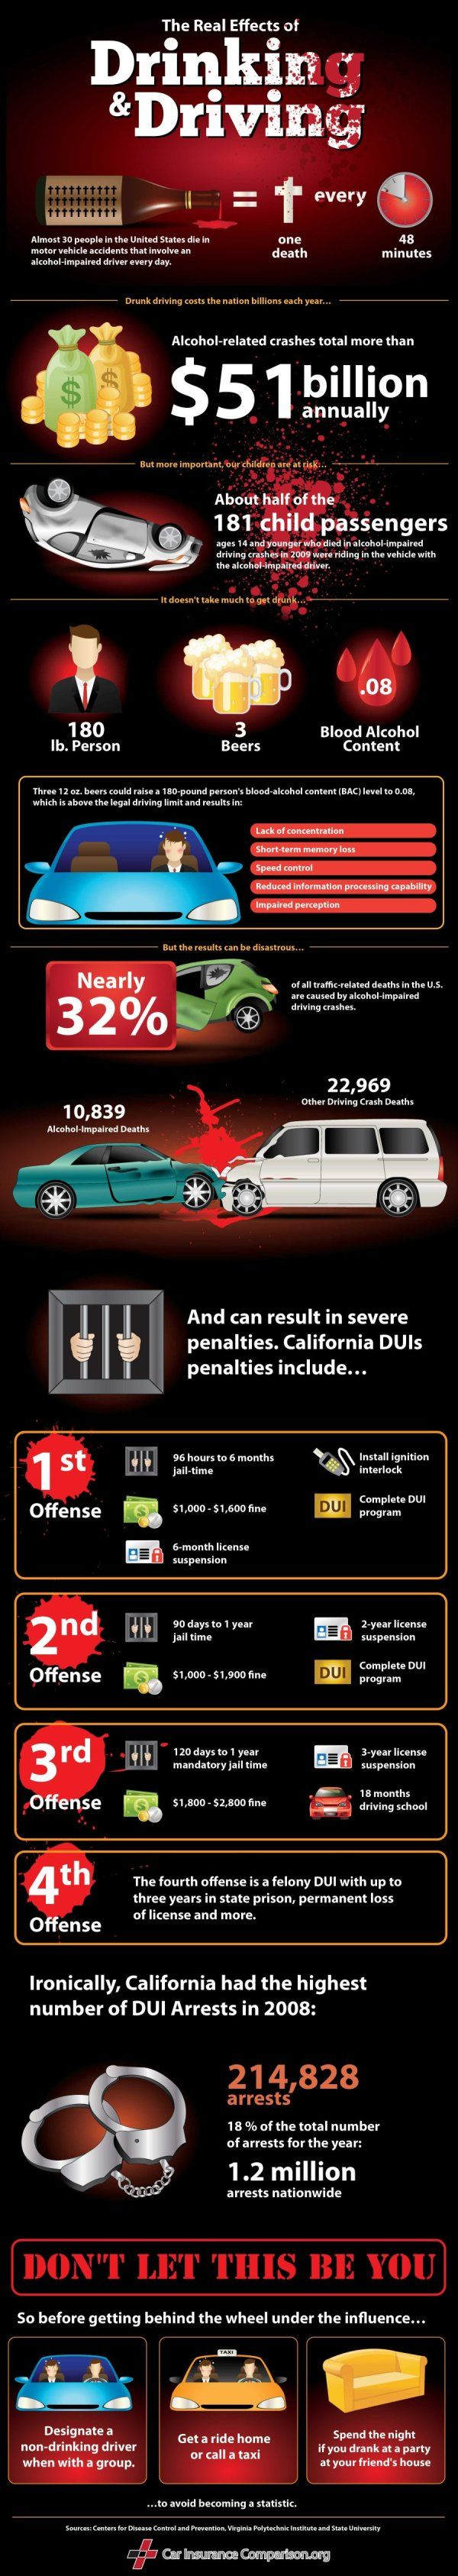 best drunk driving images drunk driving the real effects of drinking and driving infographic